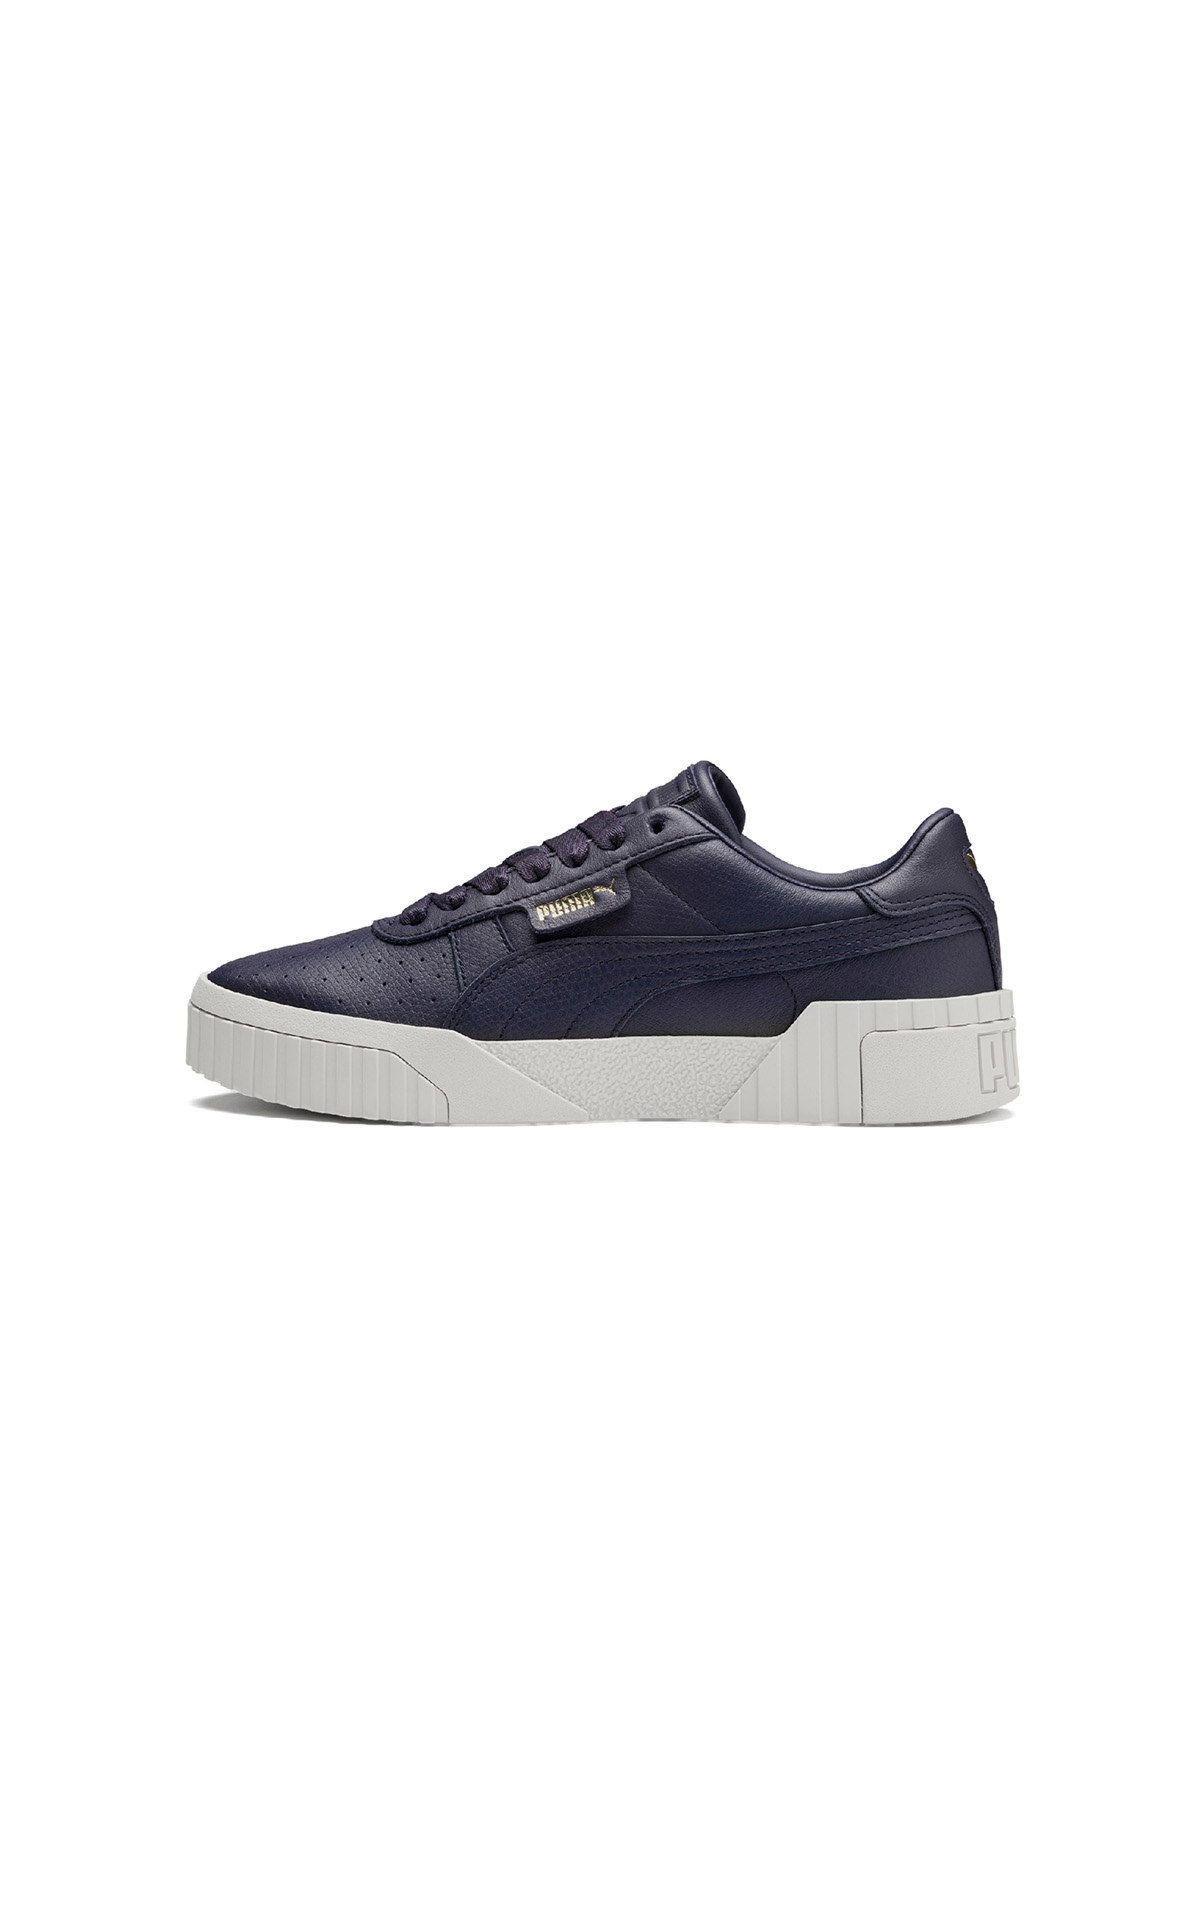 PUMA Cali exotic women's in peacoat at The Bicester Village Shopping Collection